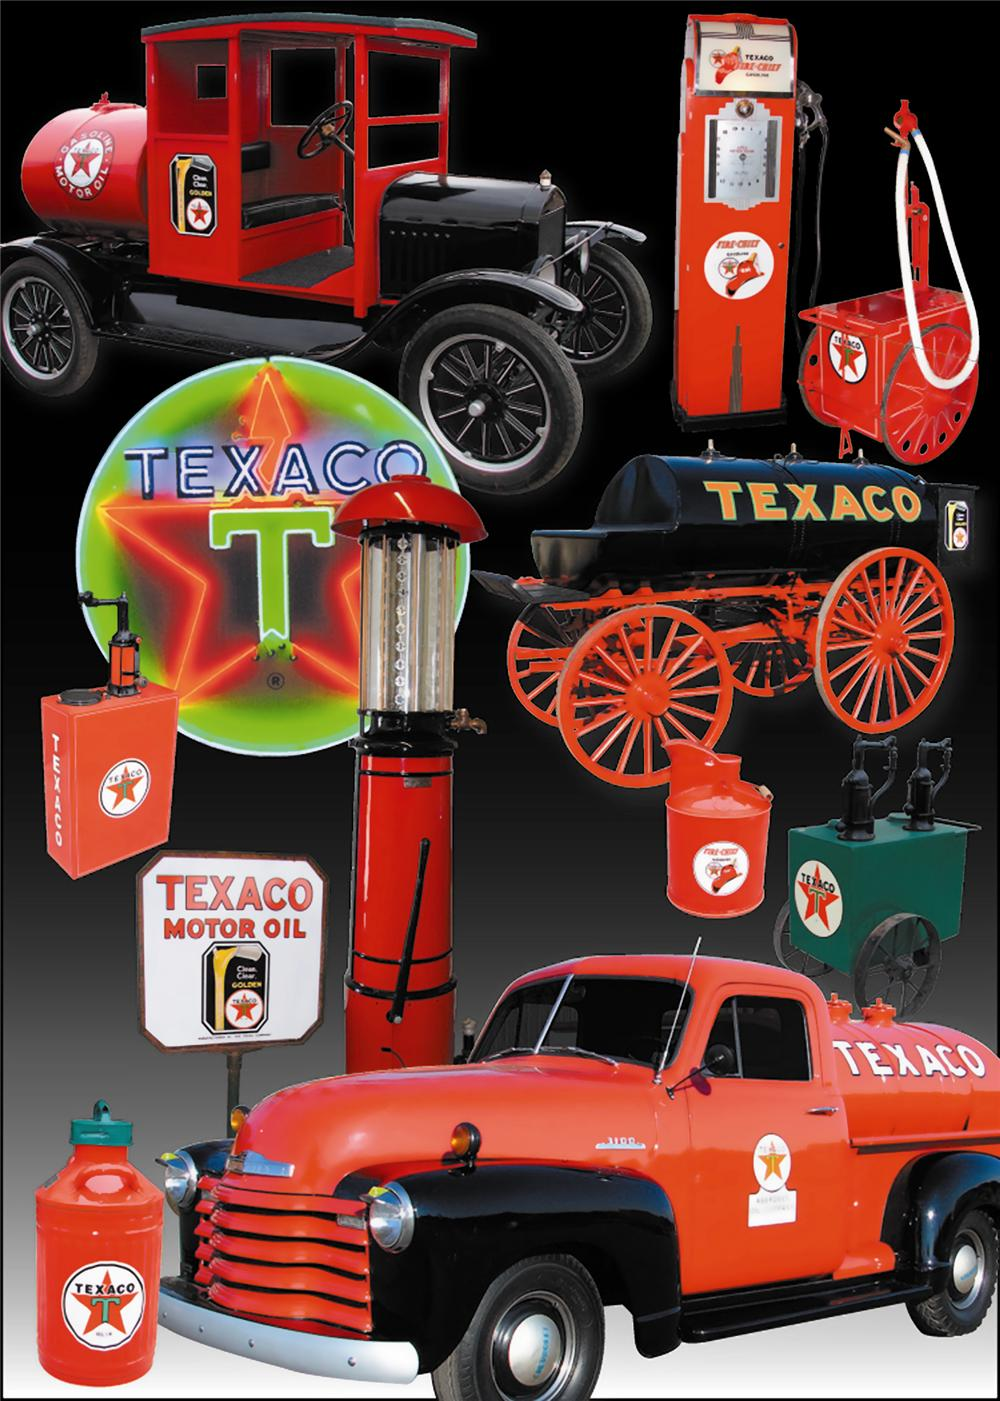 0 TEXACO OIL MUSEUM INCLUDING 180 PIECES OF TEXACO MEMORABILIA - Front 3/4 - 79136